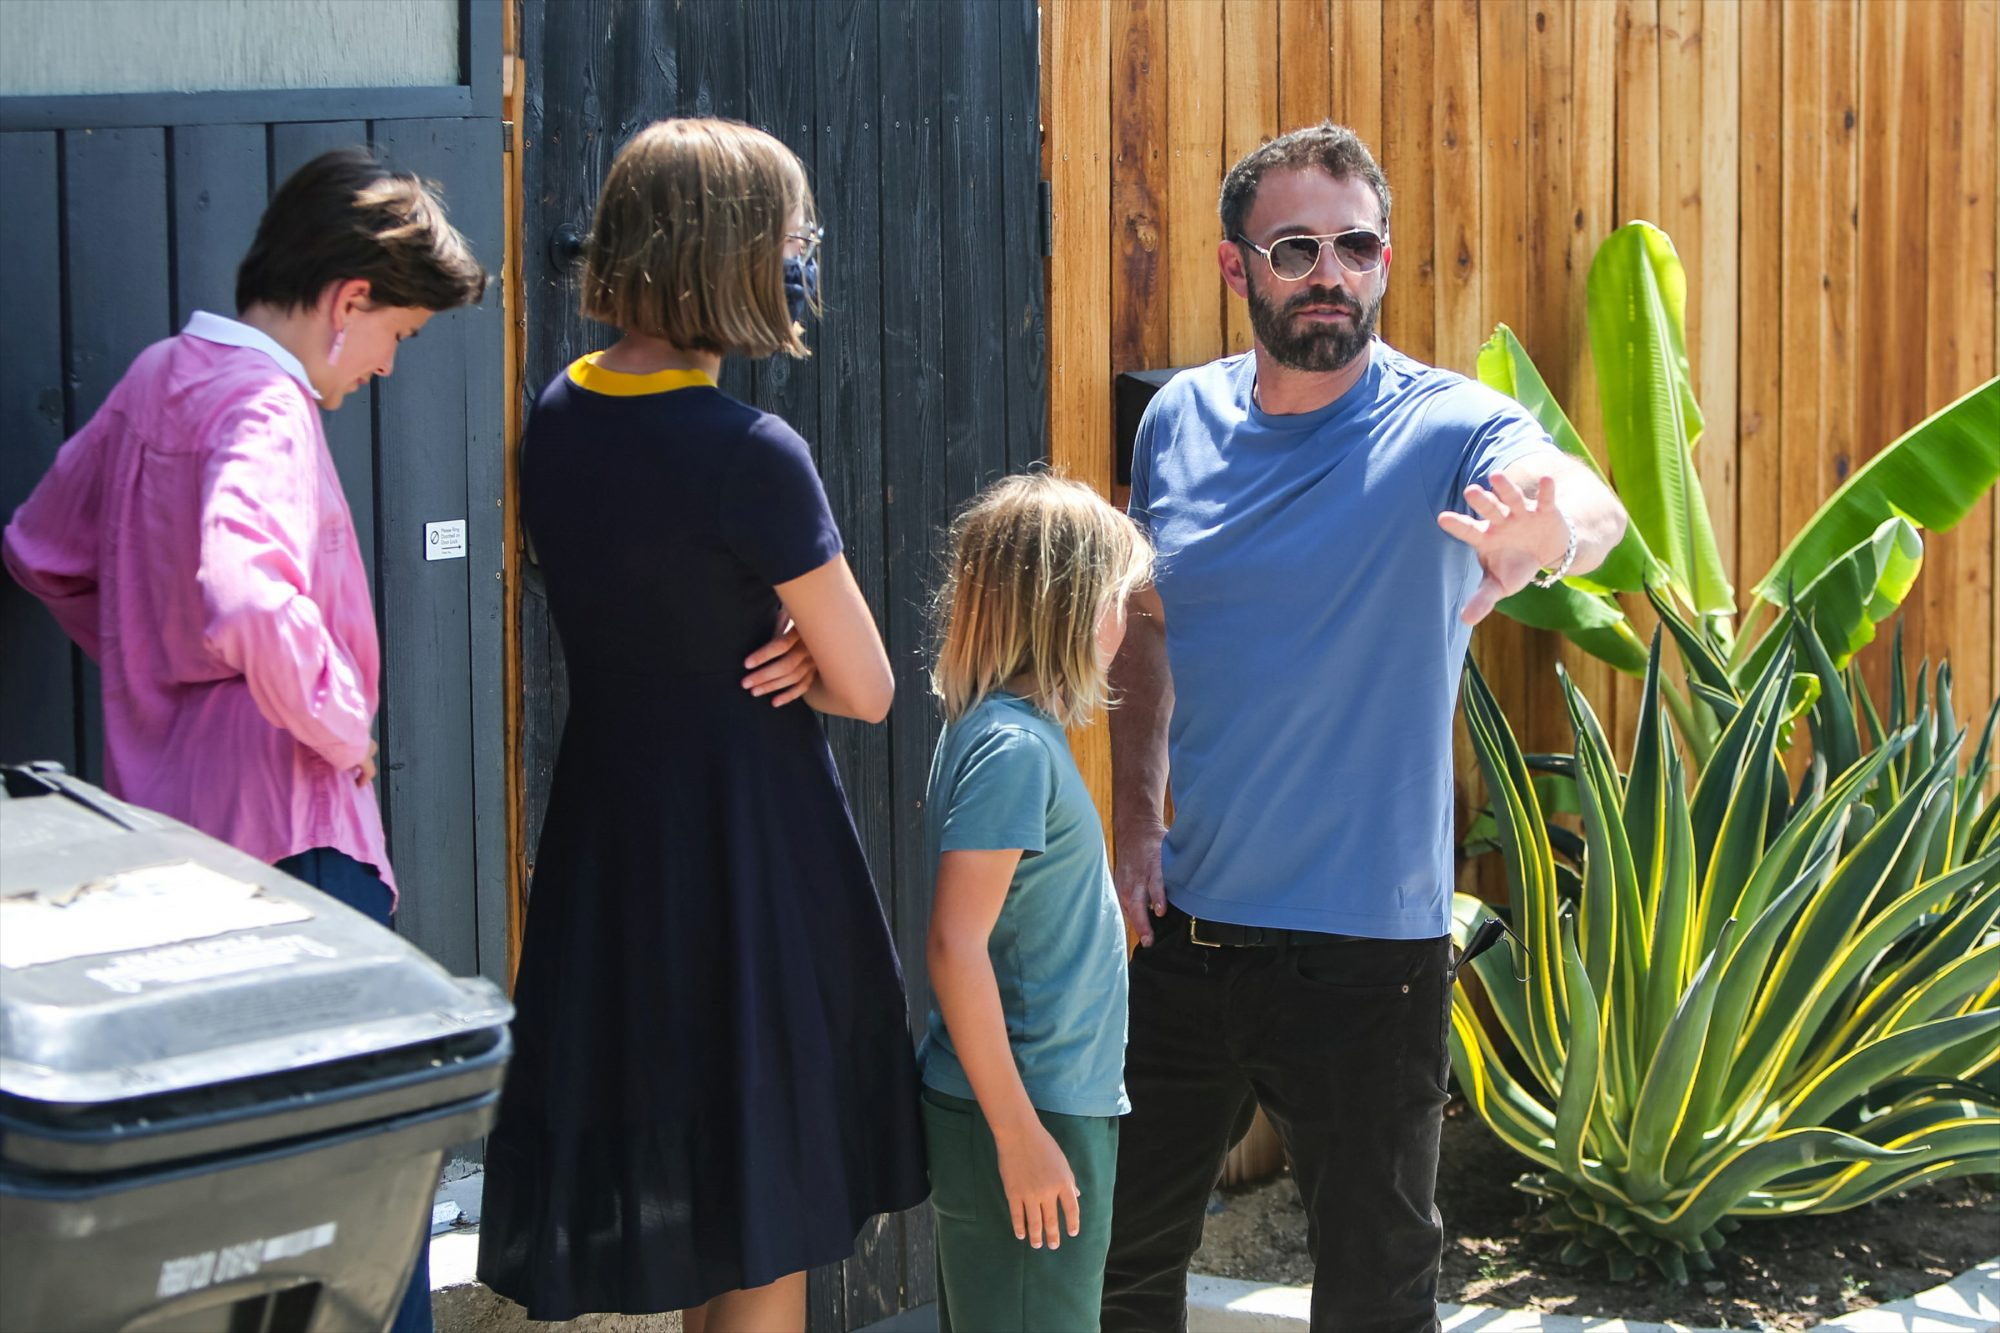 Ben Affleck Is Happy To Be With His Children On His 49th Birthday